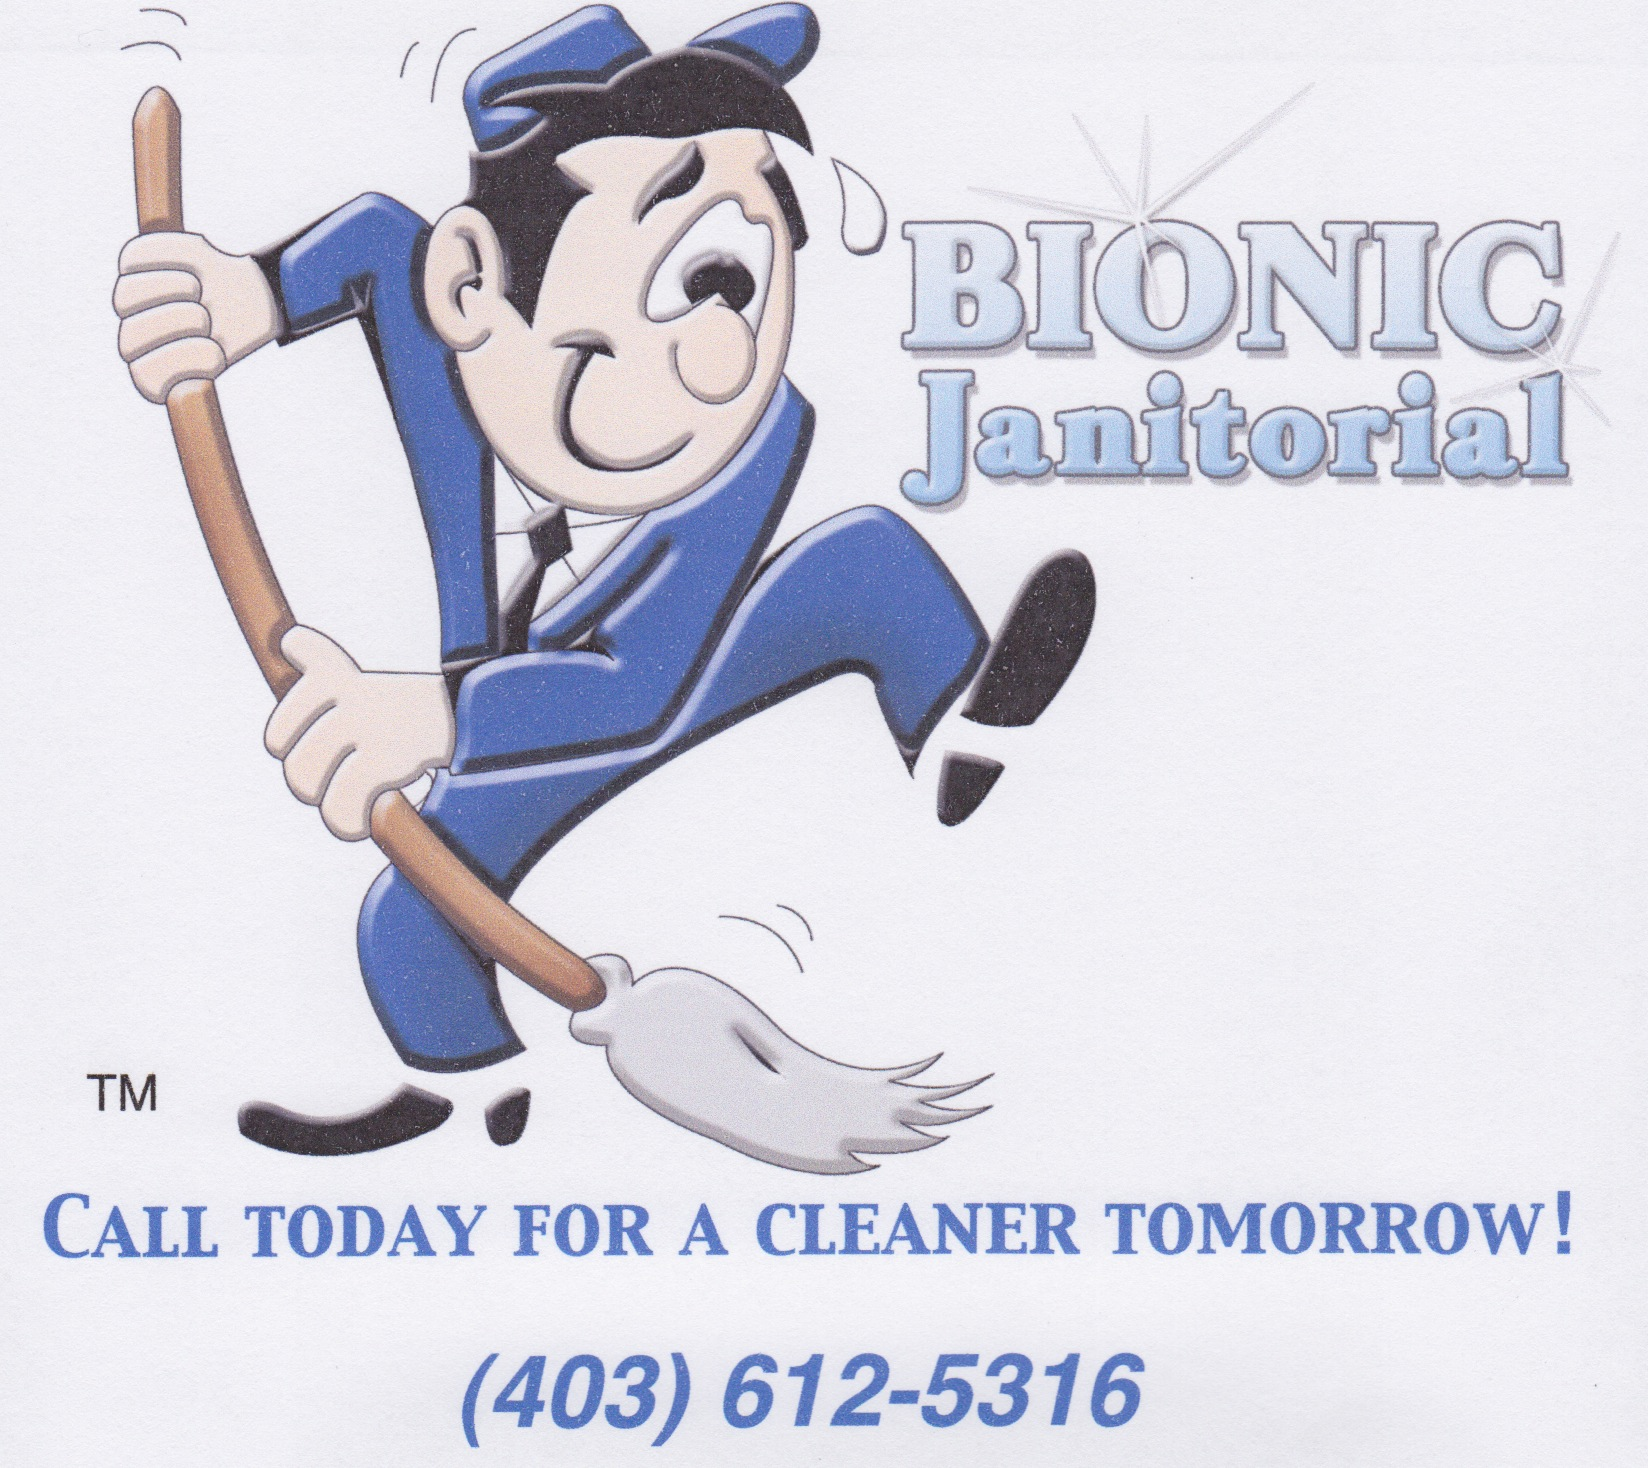 Bionic Janitorial